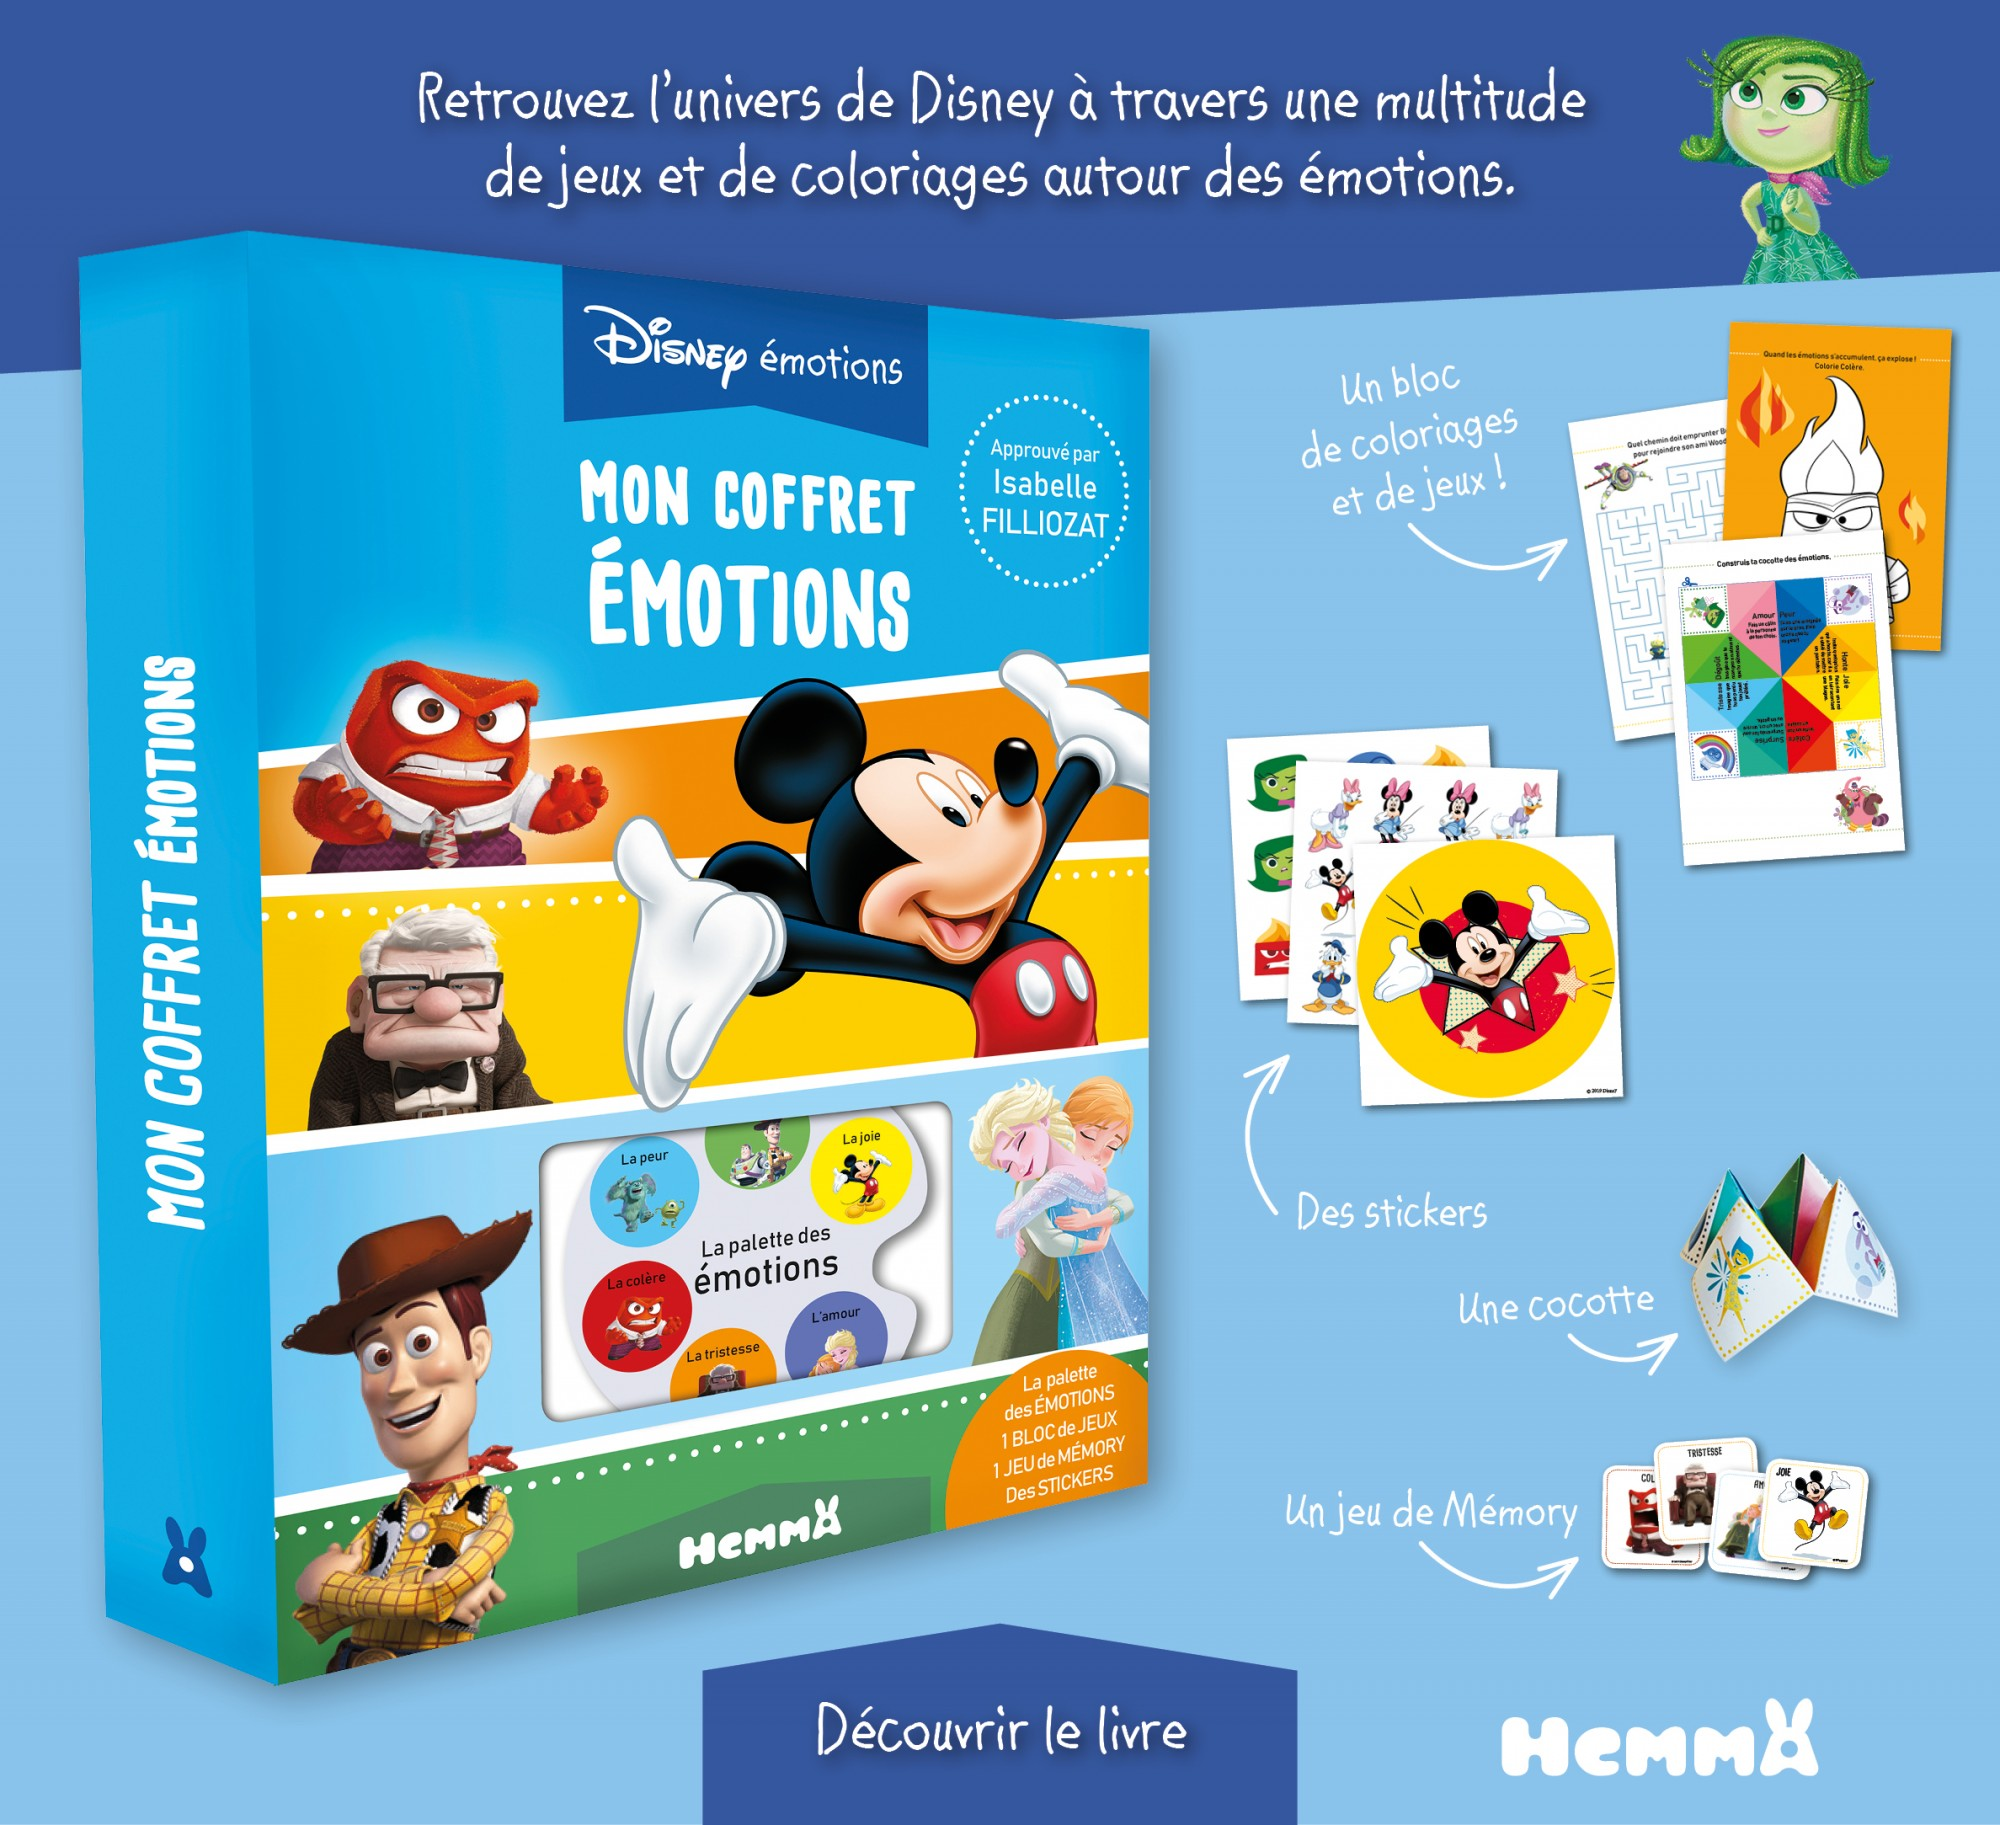 4789_1_mea-coffret_emotion.jpg